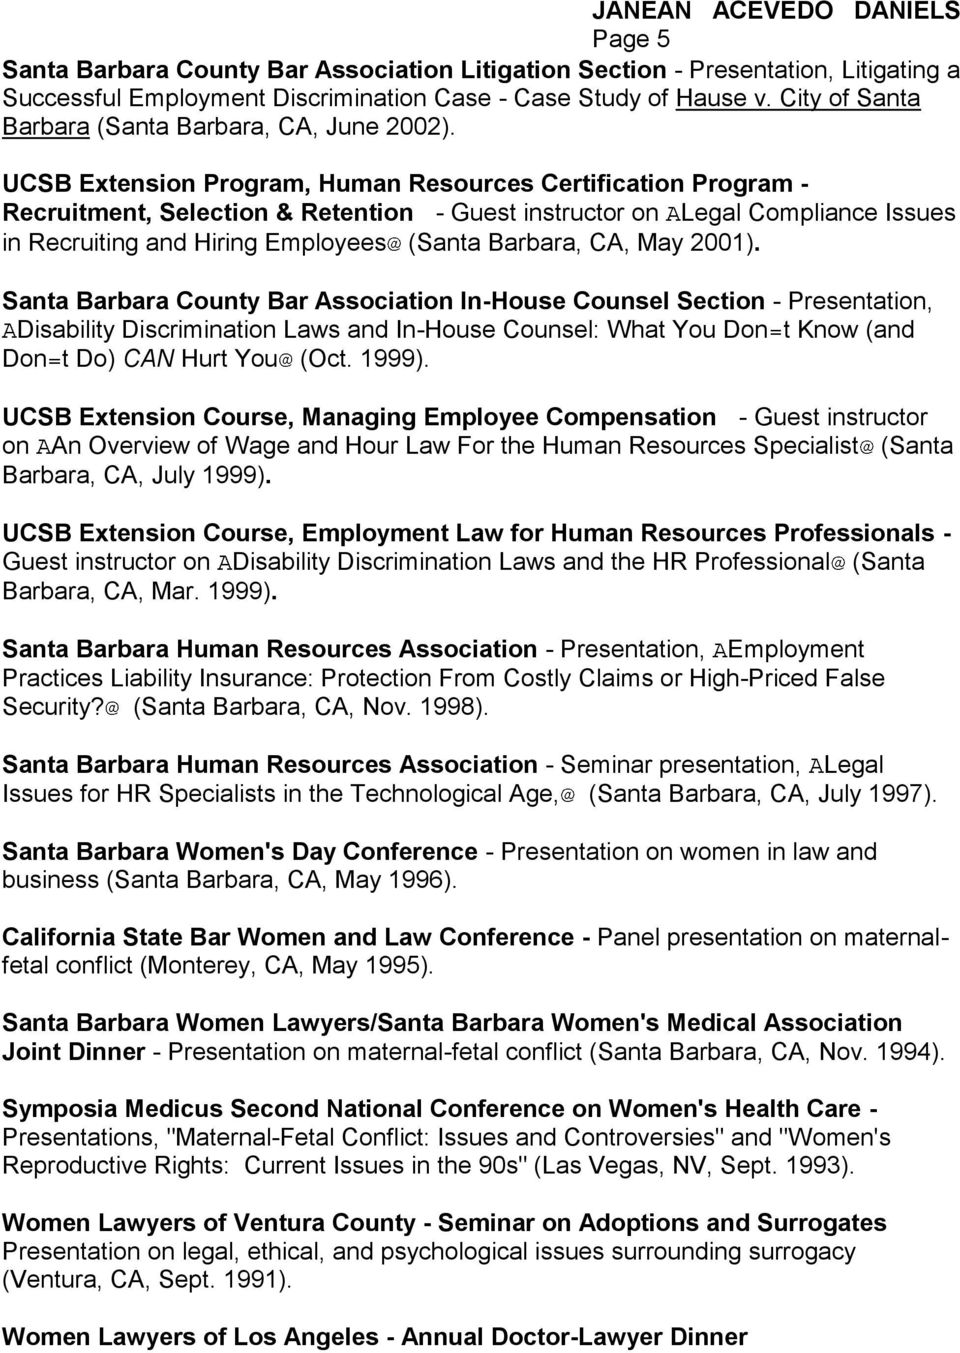 UCSB Extension Program, Human Resources Certification Program - Recruitment, Selection & Retention - Guest instructor on Legal Compliance Issues in Recruiting and Hiring Employees (Santa Barbara, CA,